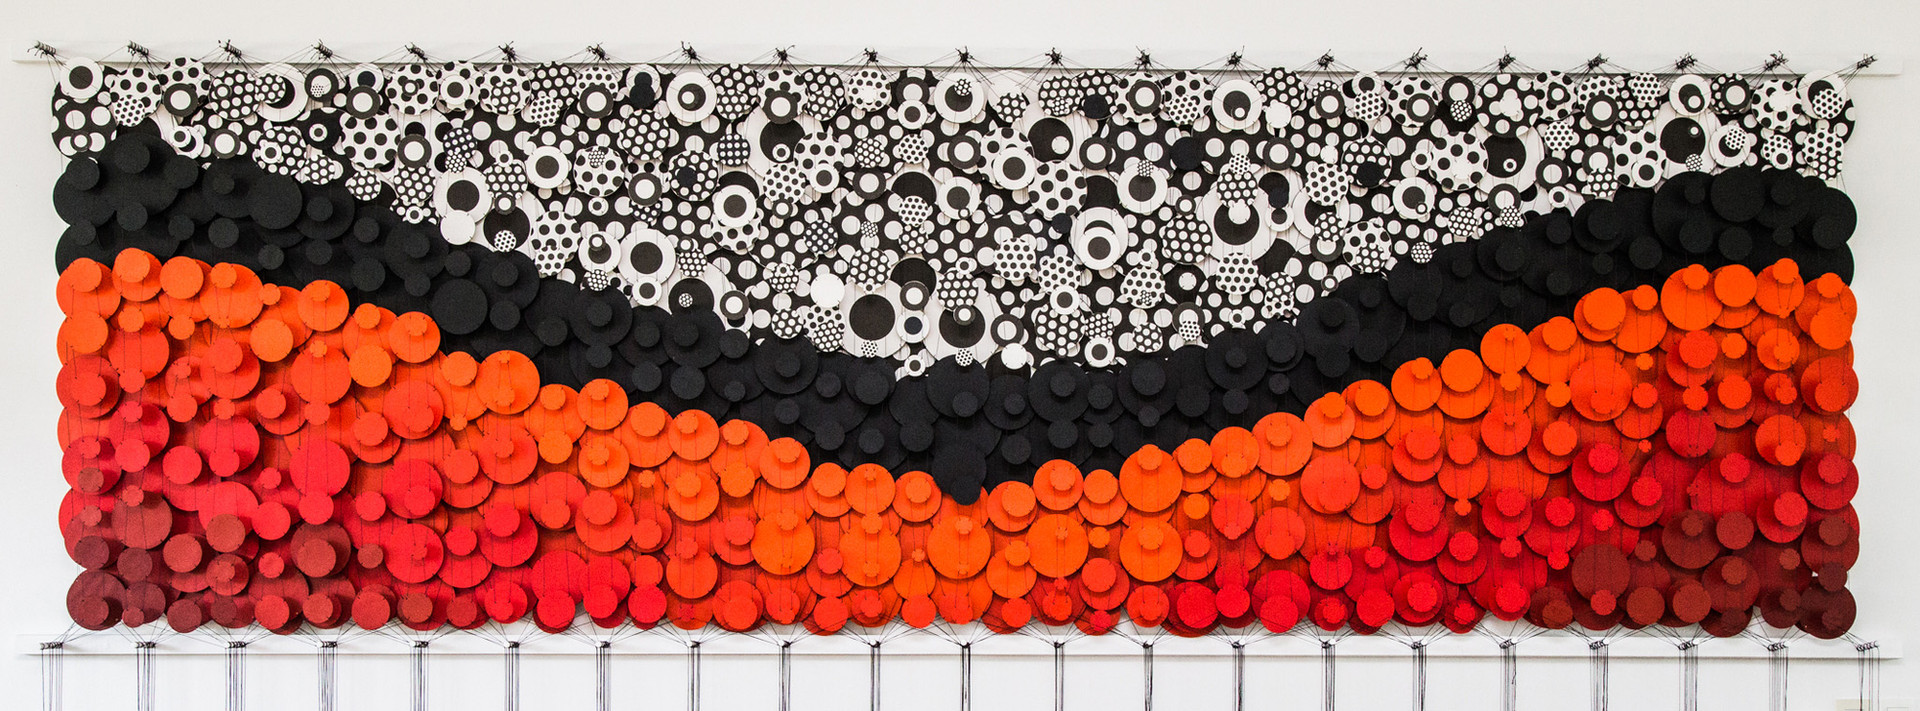 Cecilia Glazman Sunset explosion 2017 Papel y madera pintado a mano e hilos (Hand painted paper and wood, thread) 480 x 140 cm.